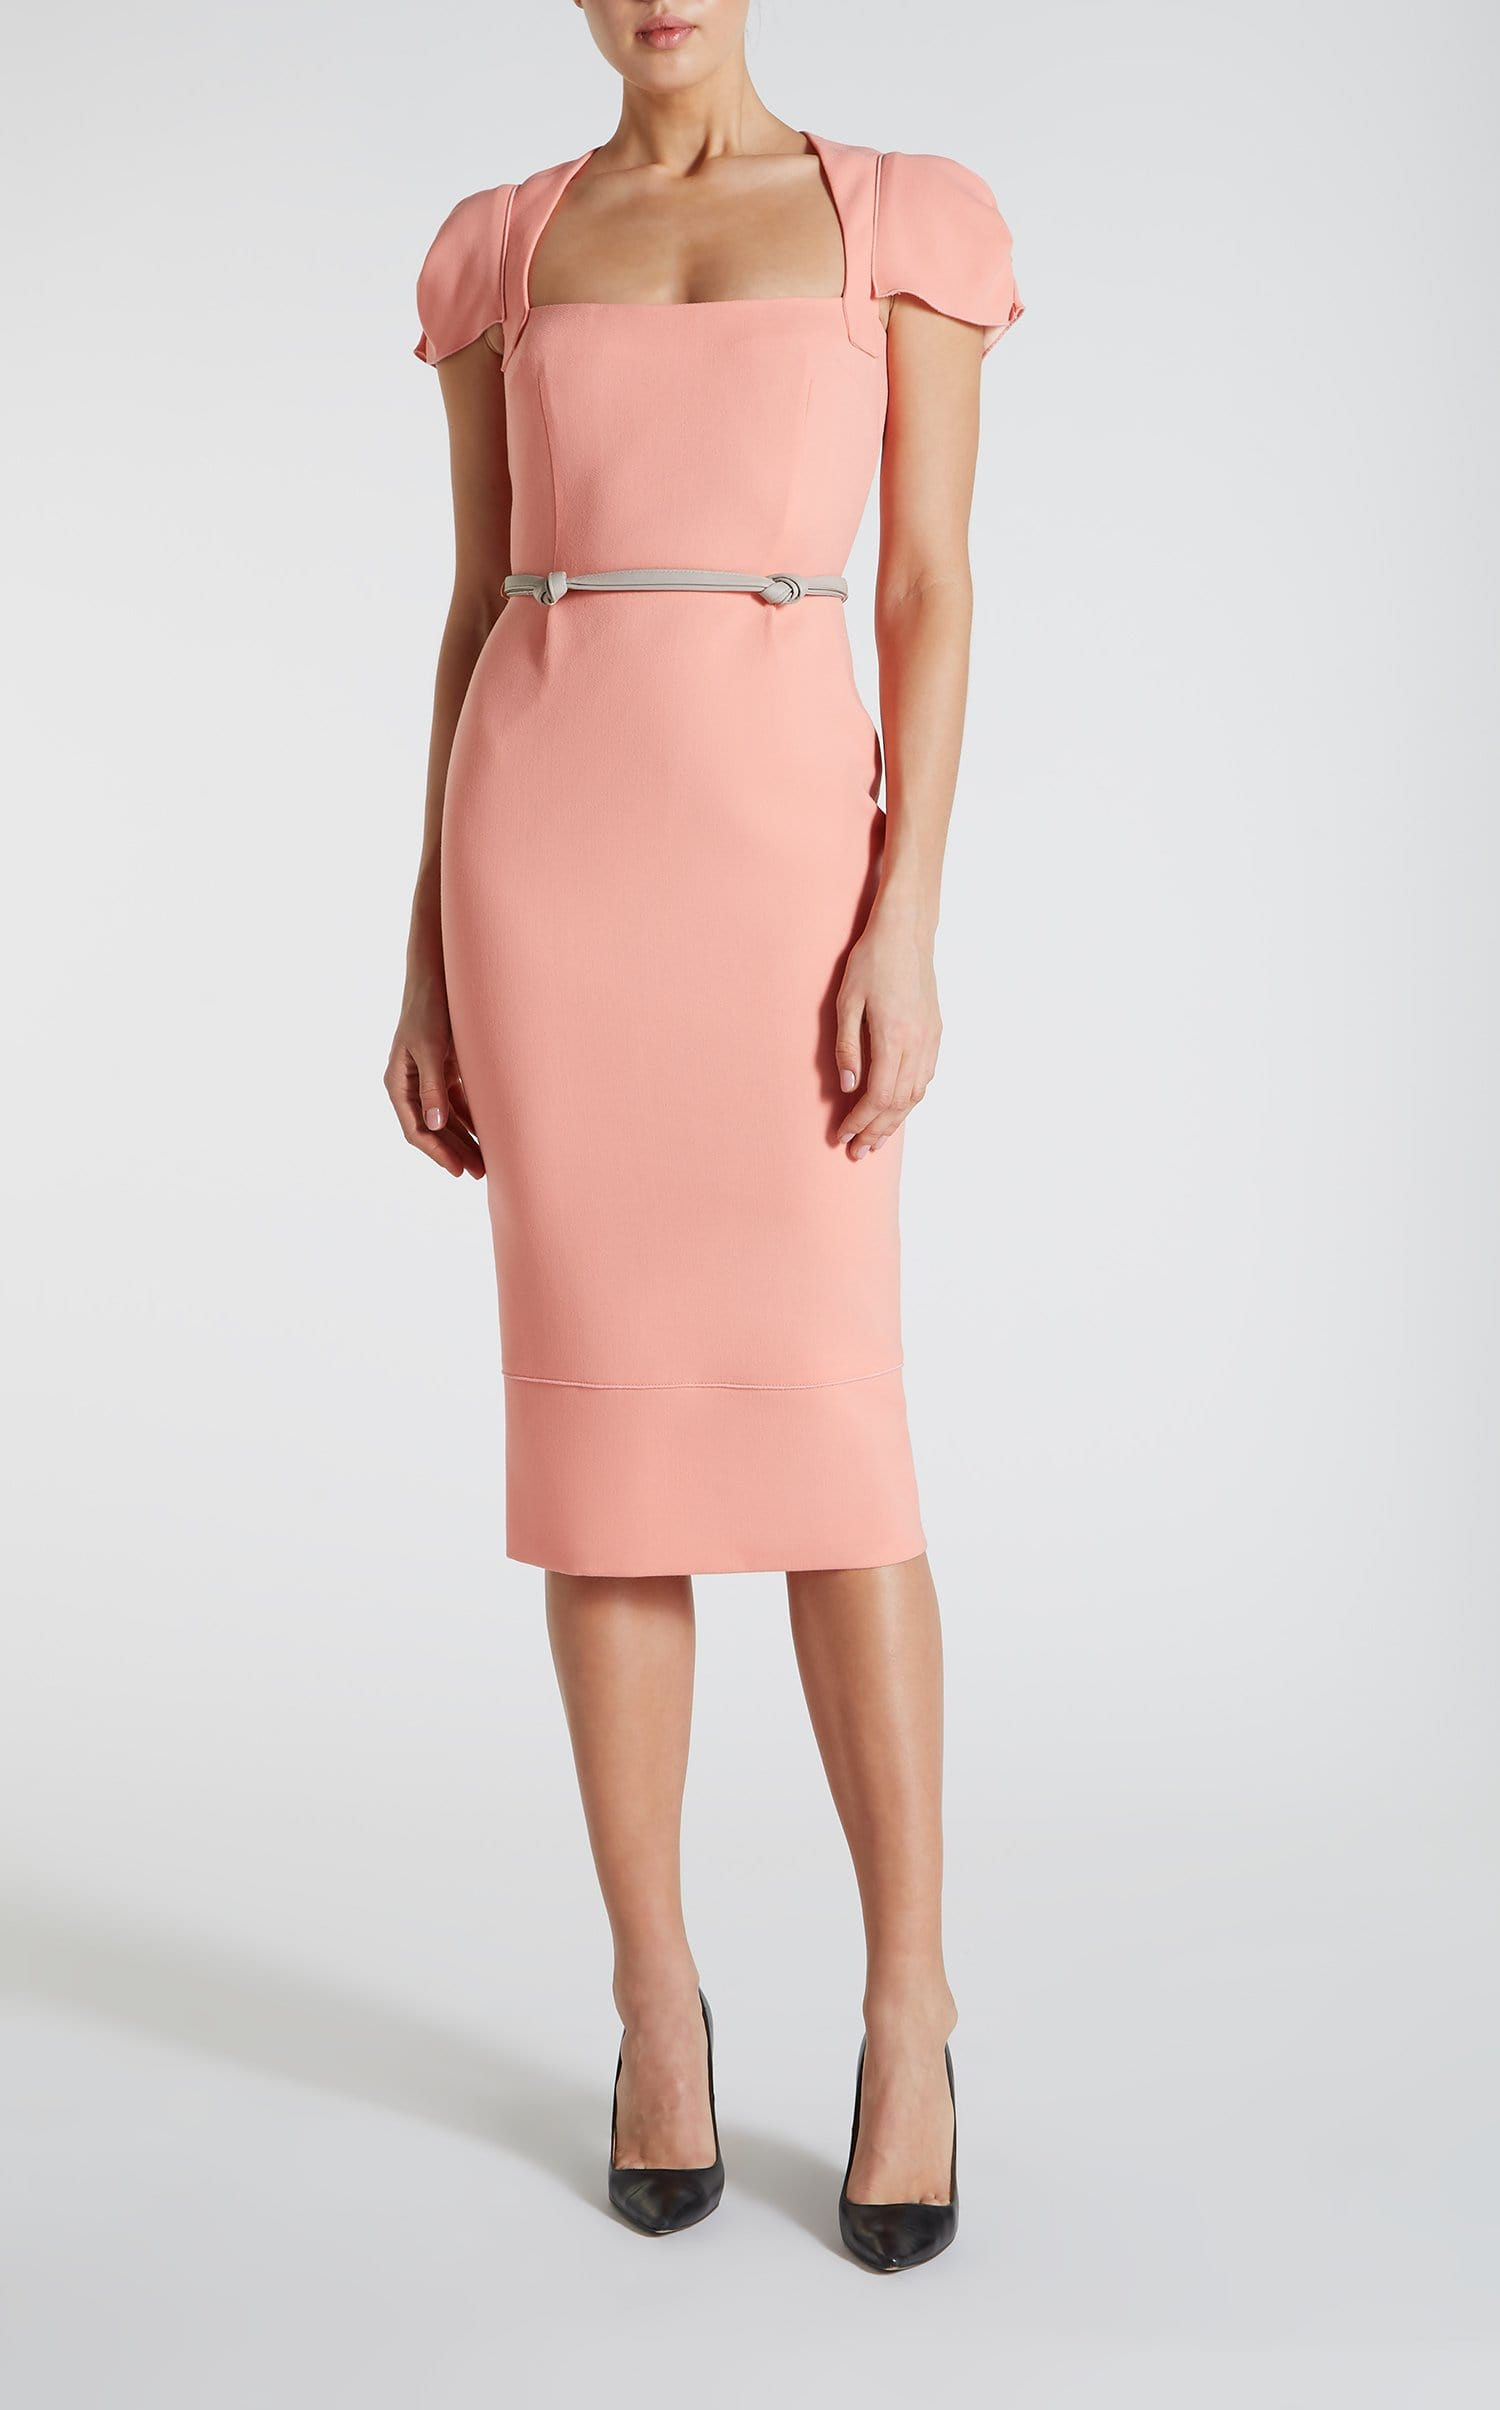 Galaxy Dress In Antique Rose from Roland Mouret